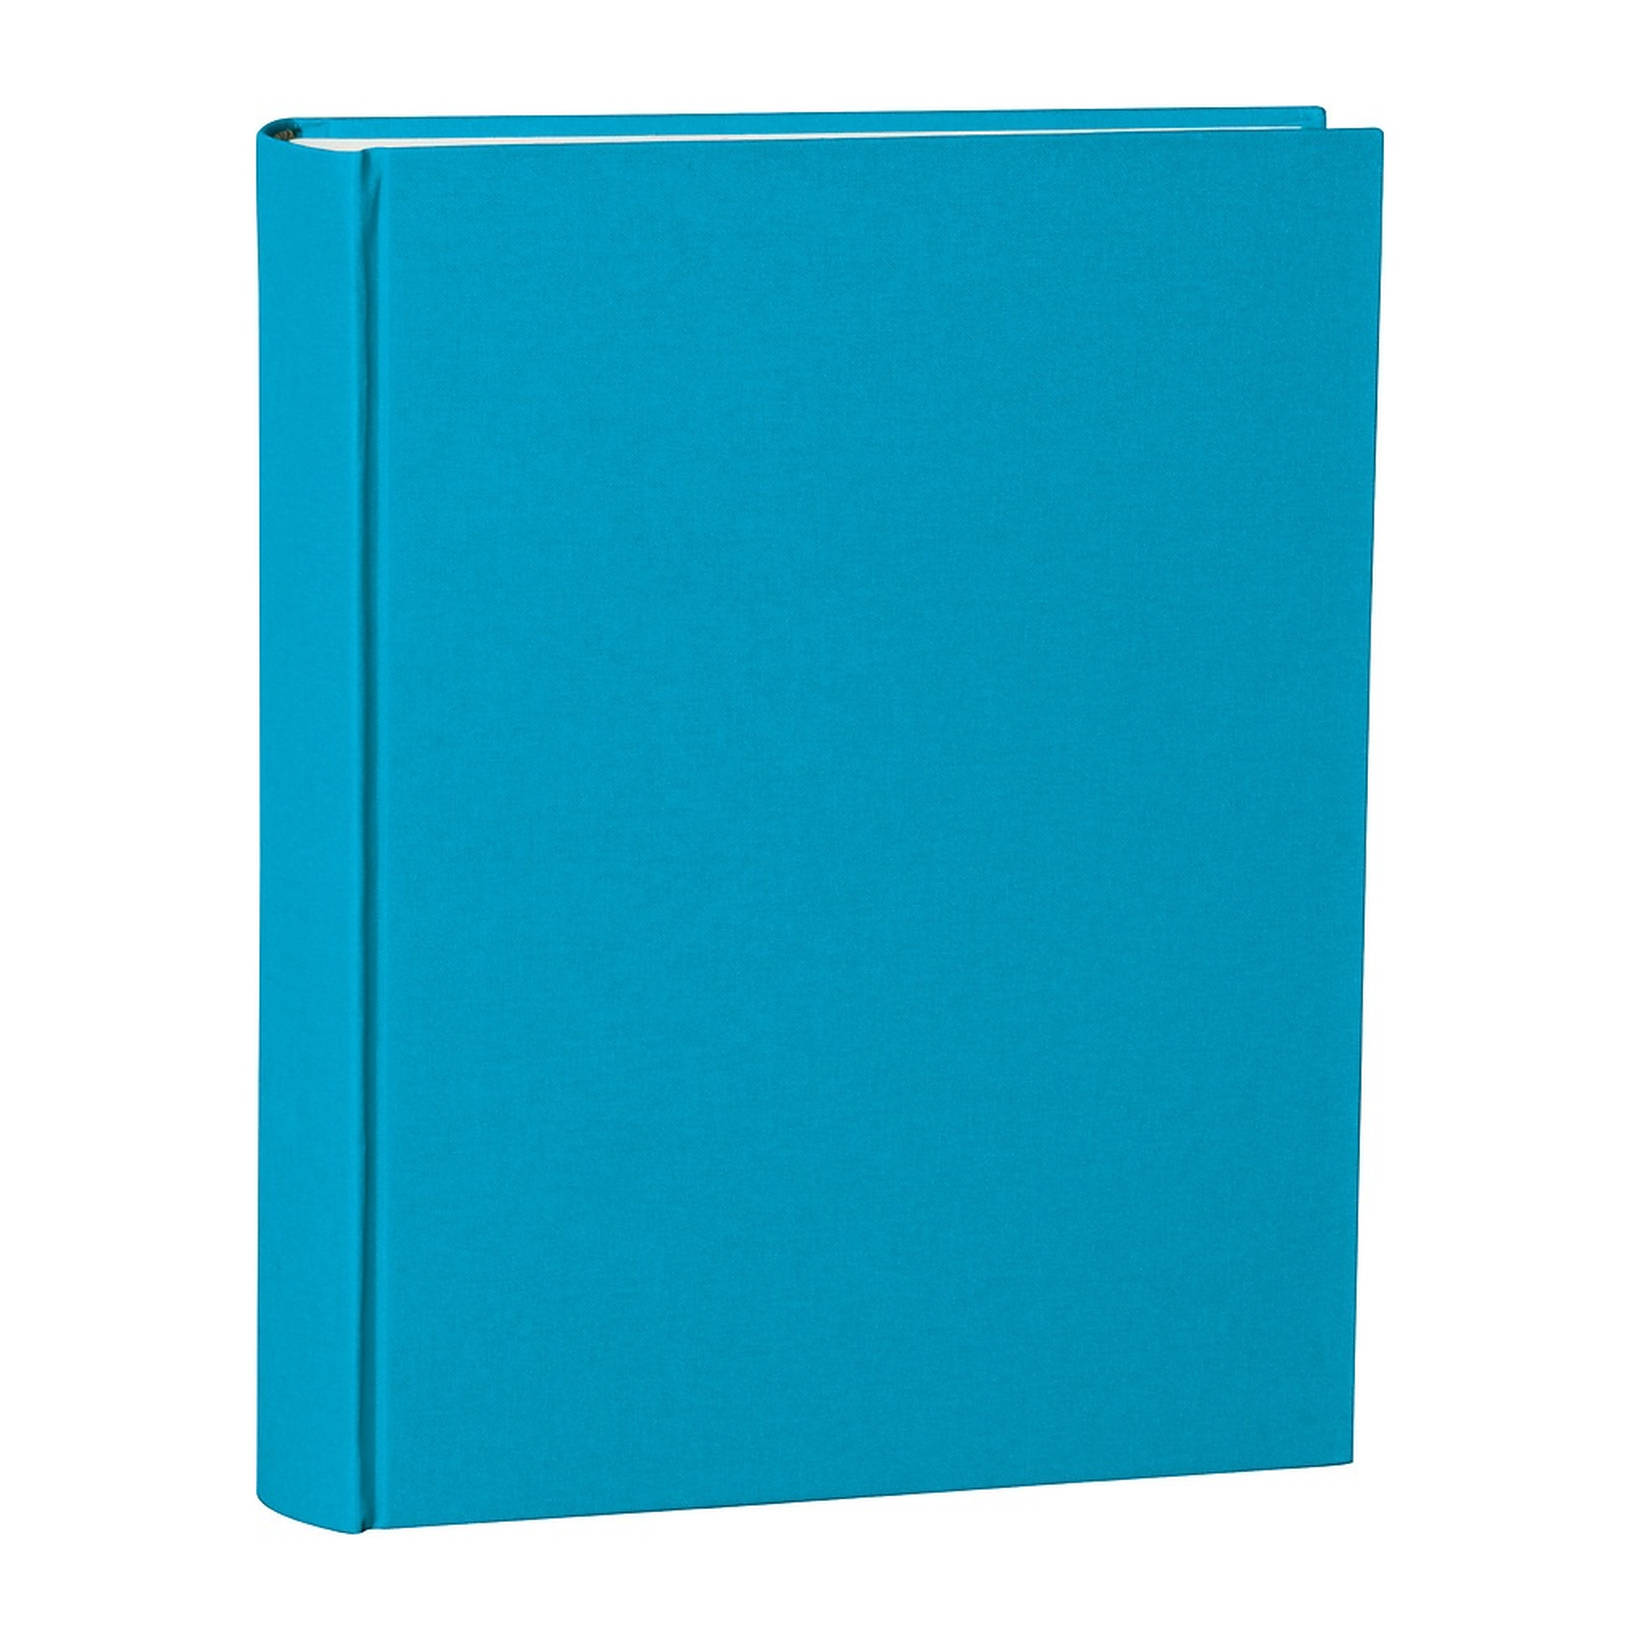 Classic Photo Album Large With Linen Binding, Turquoise